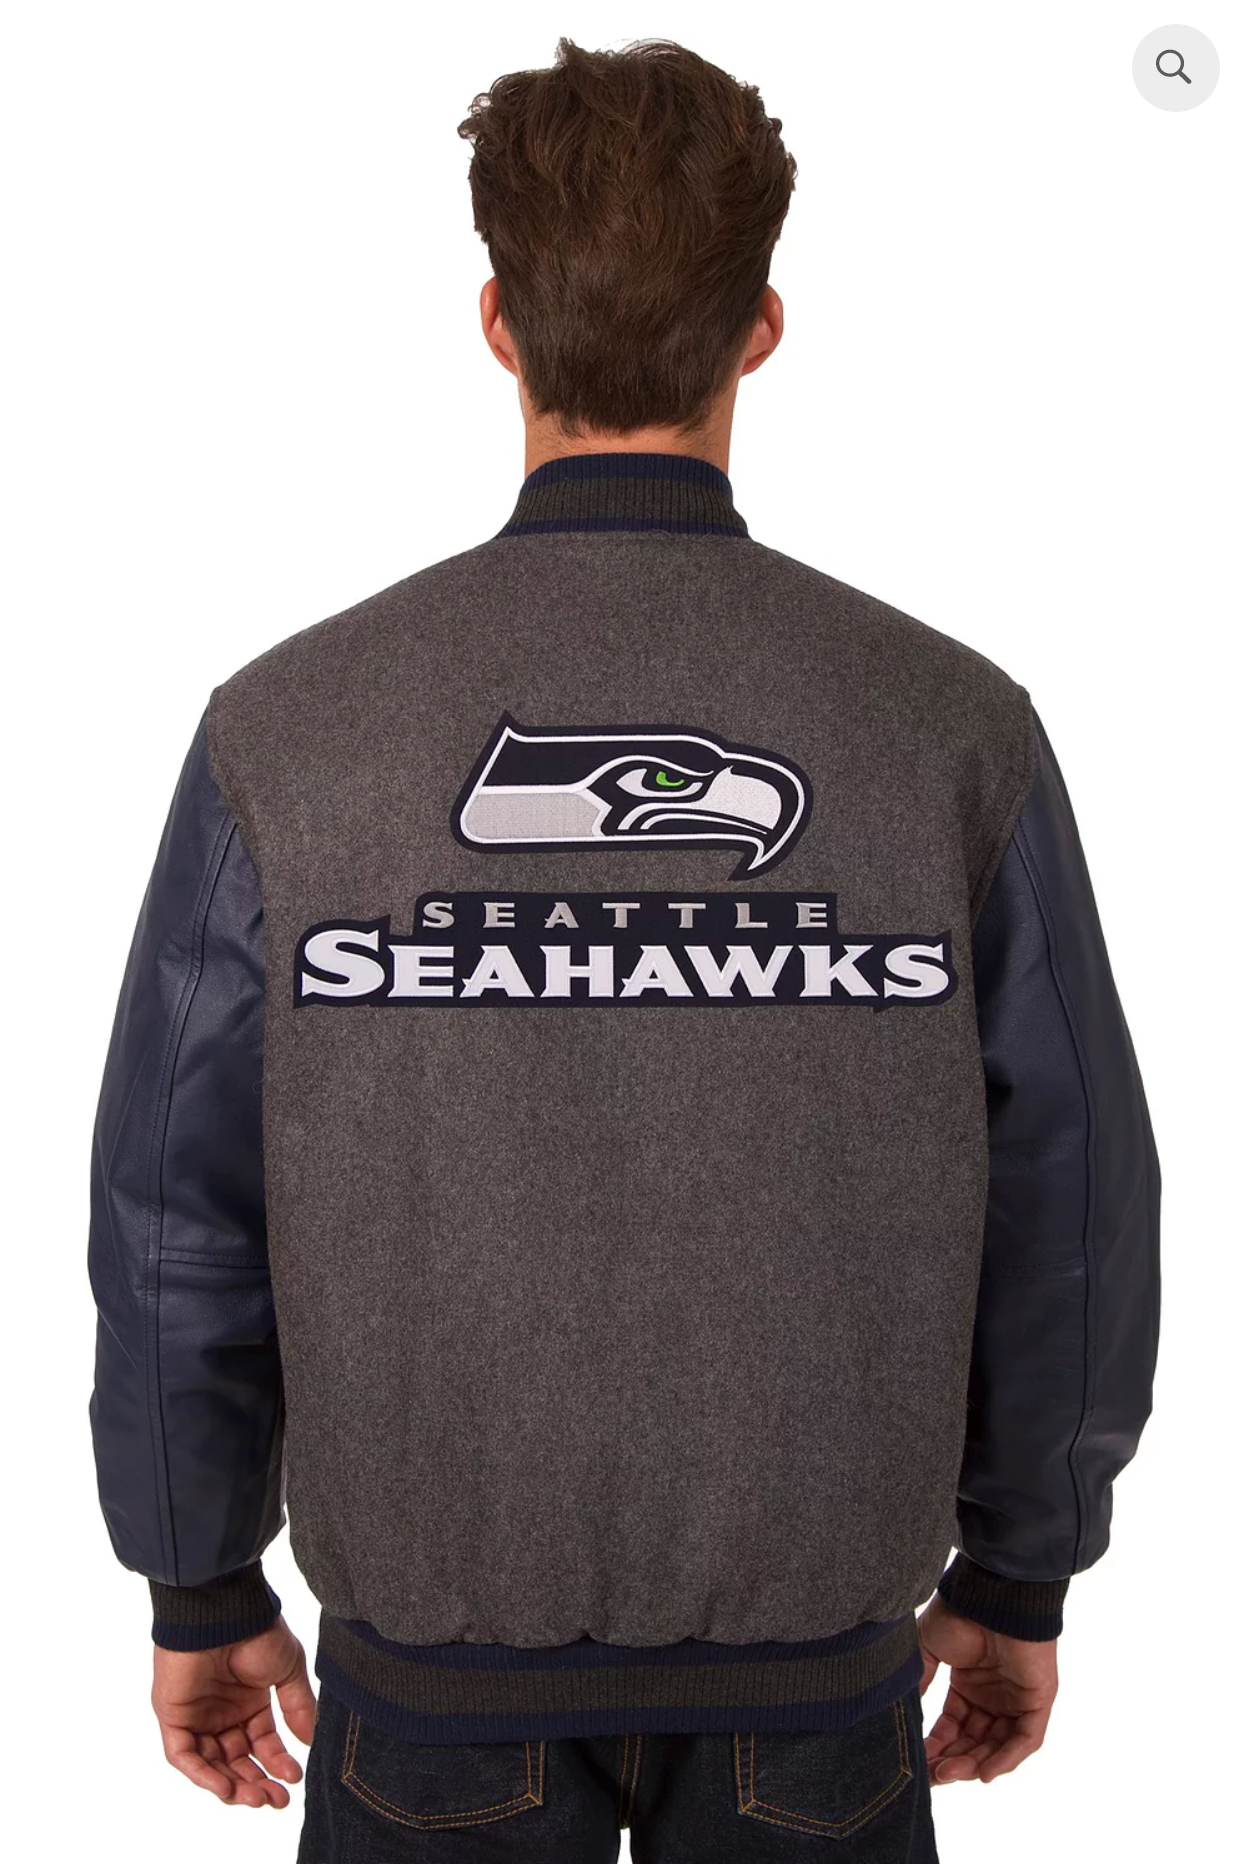 Seattle Seahawks Reversible Varsity Jacket with Back Logo